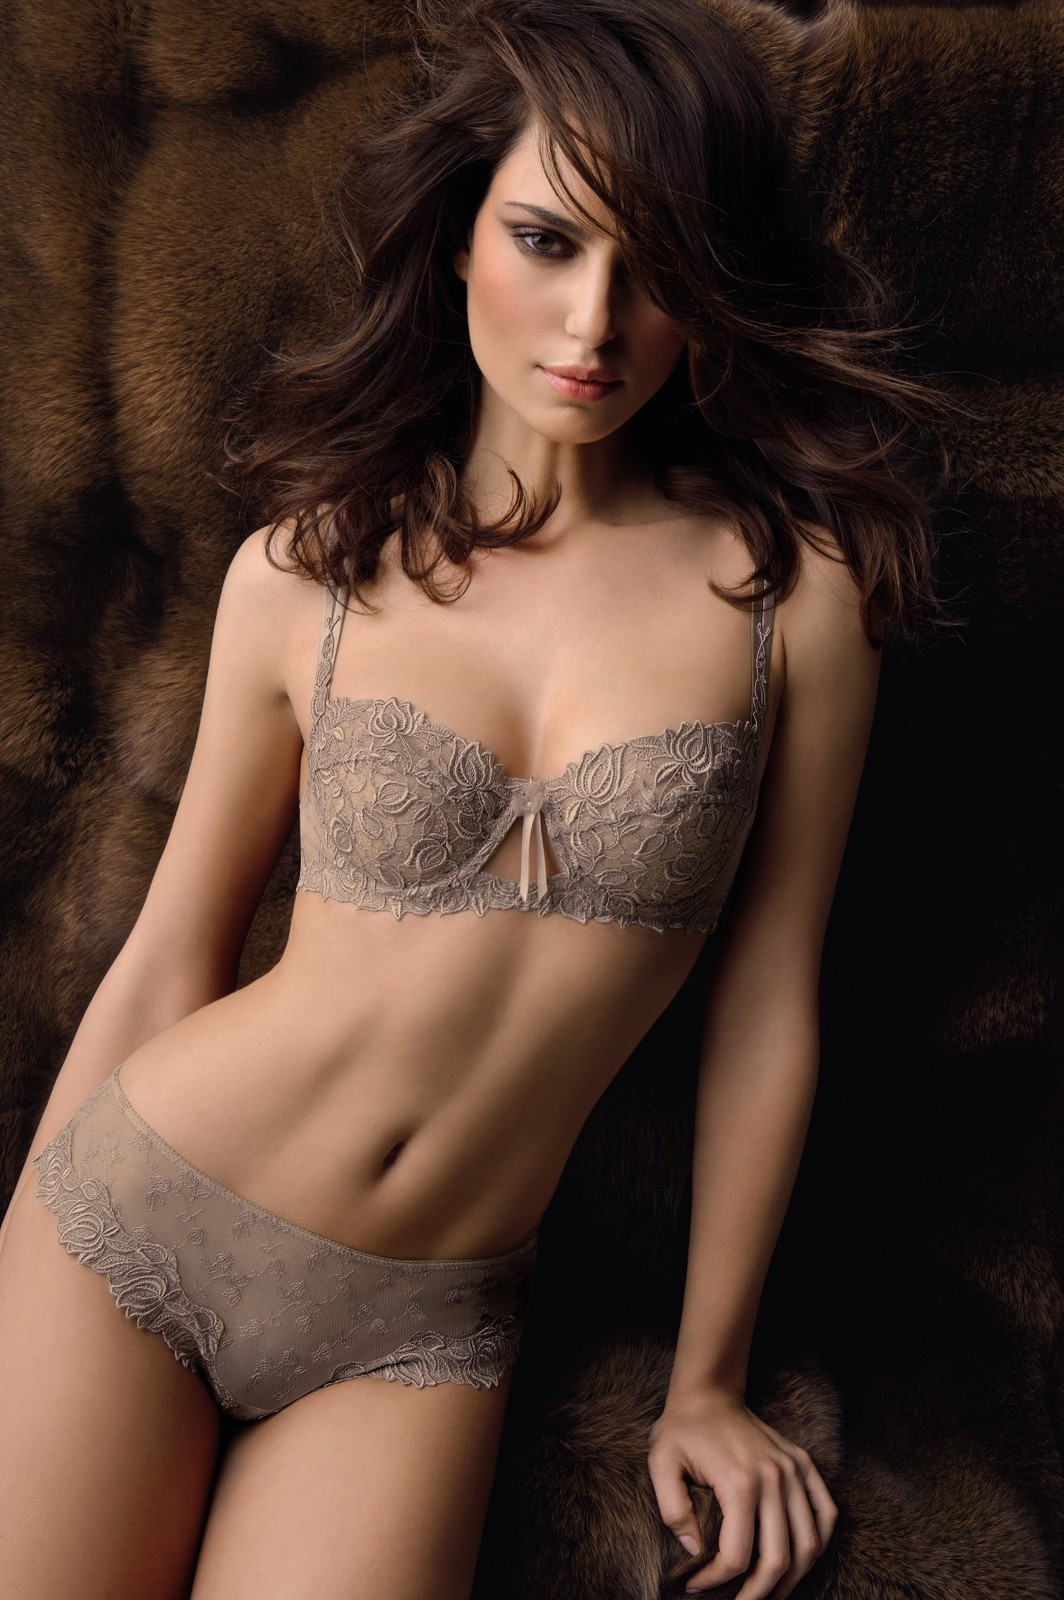 Cantrinel Menghia Luks Wowsome In Lise Charmel Lingerie -6697